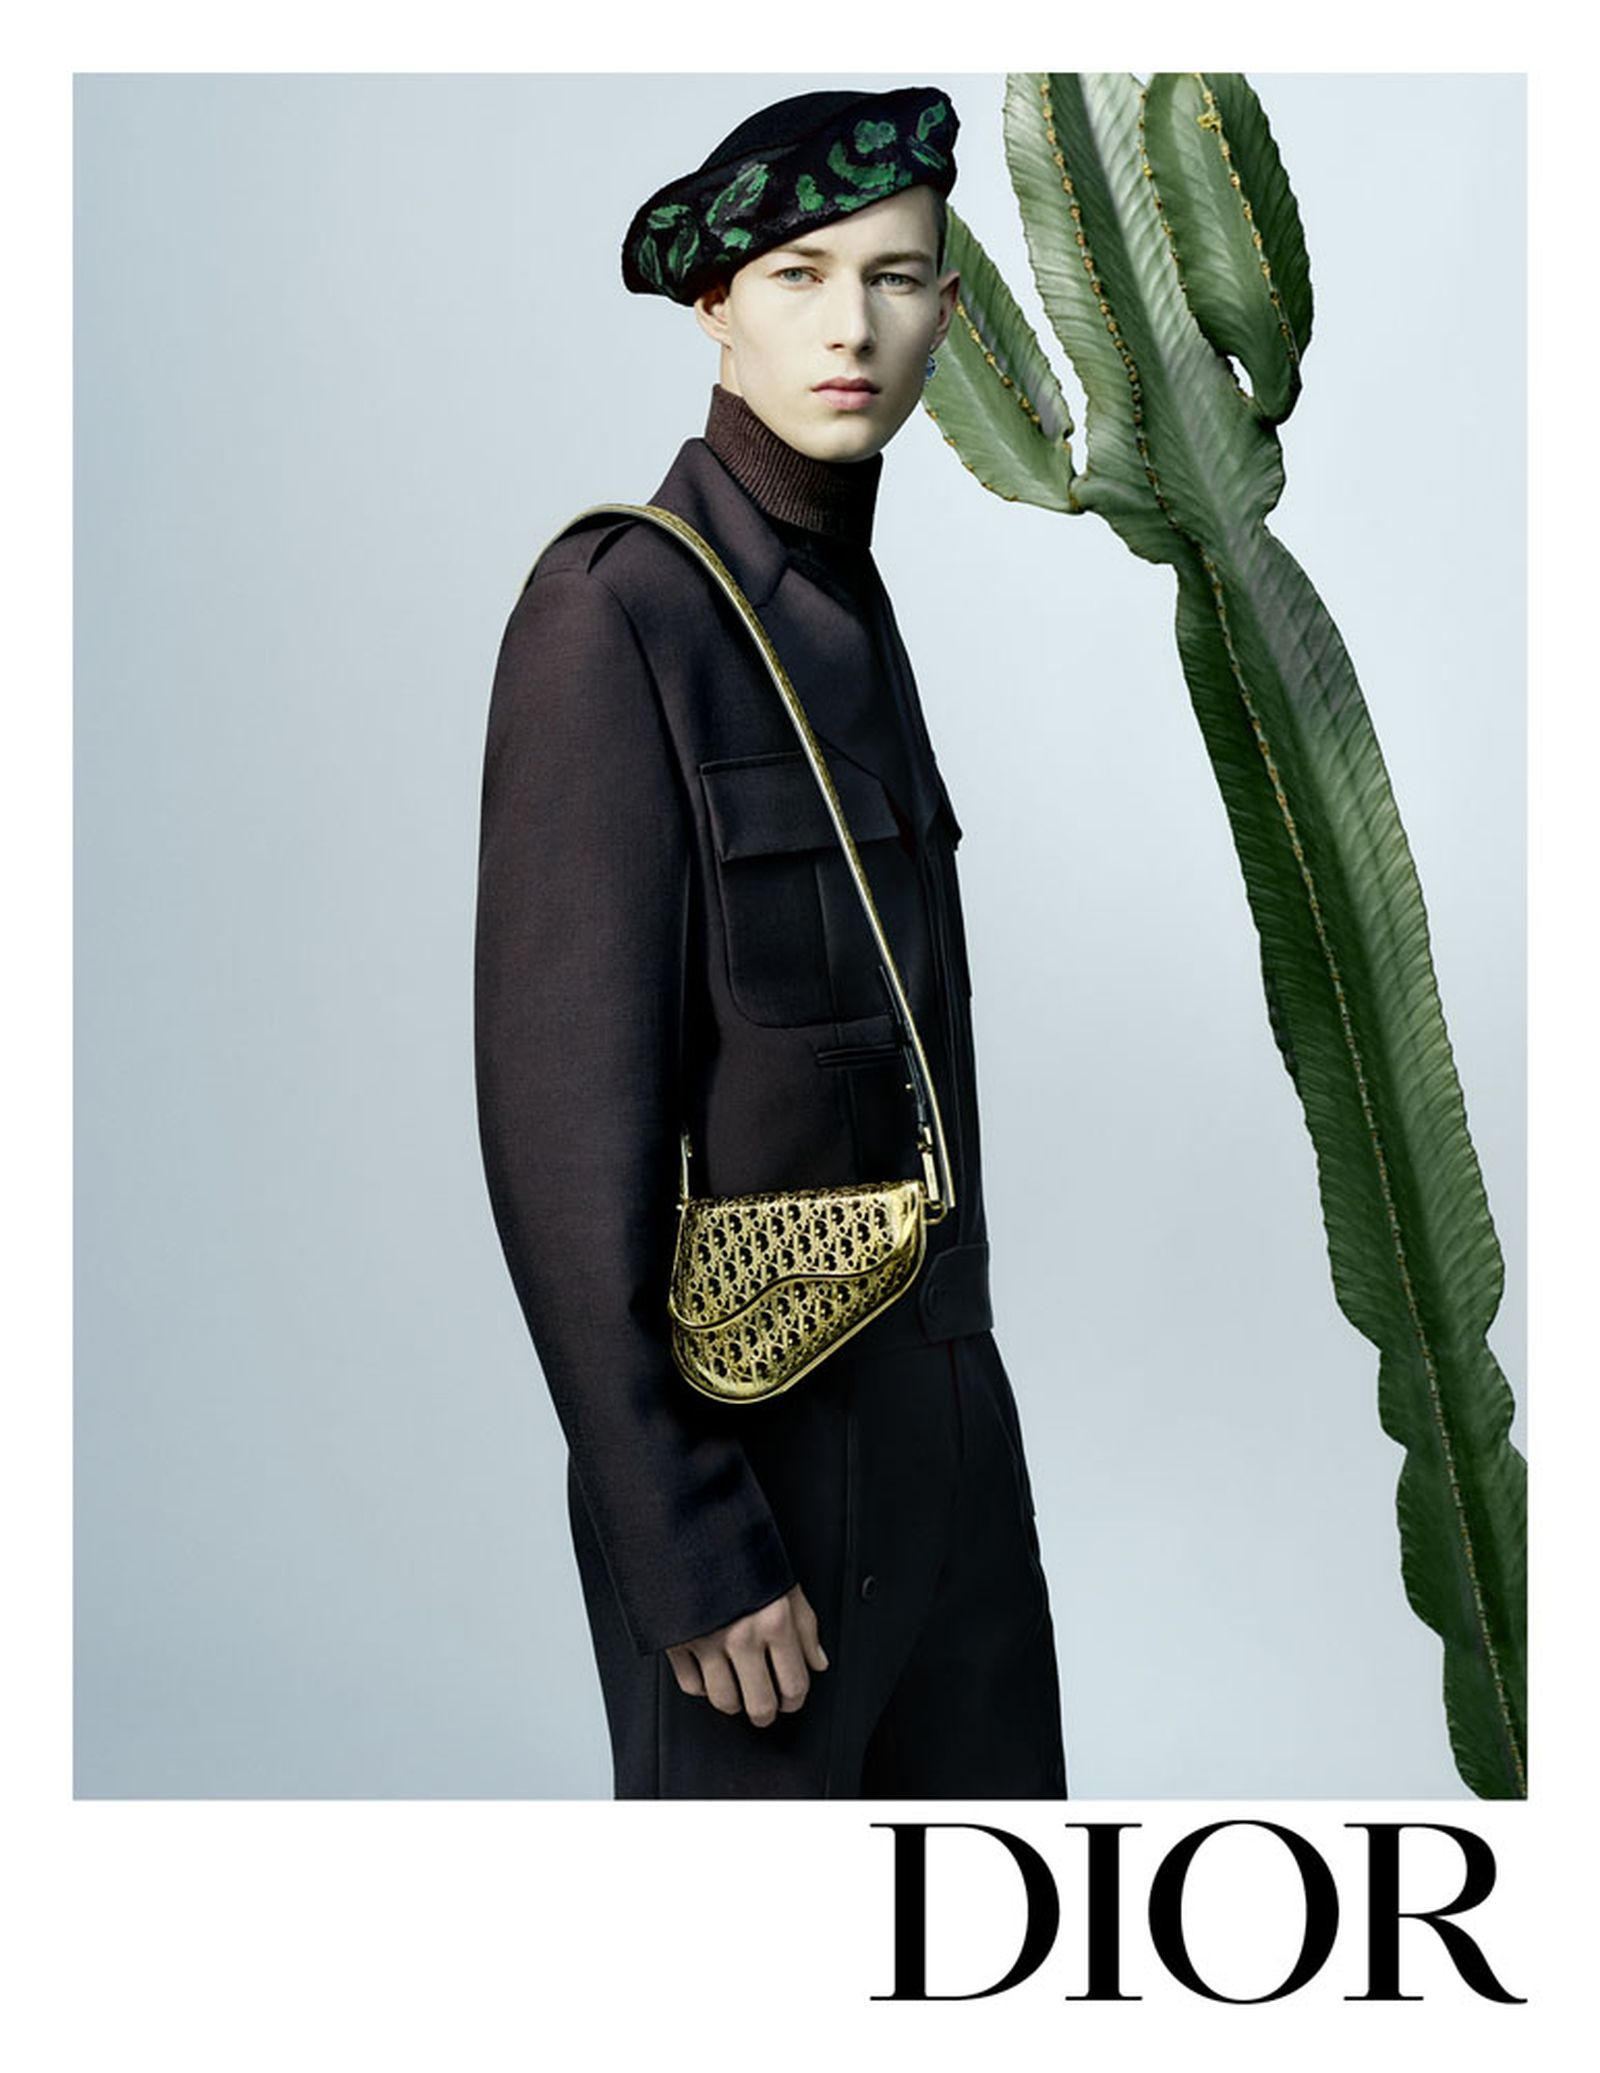 dior-mens-winter-2021-campain-peter-doig-collaboration-08